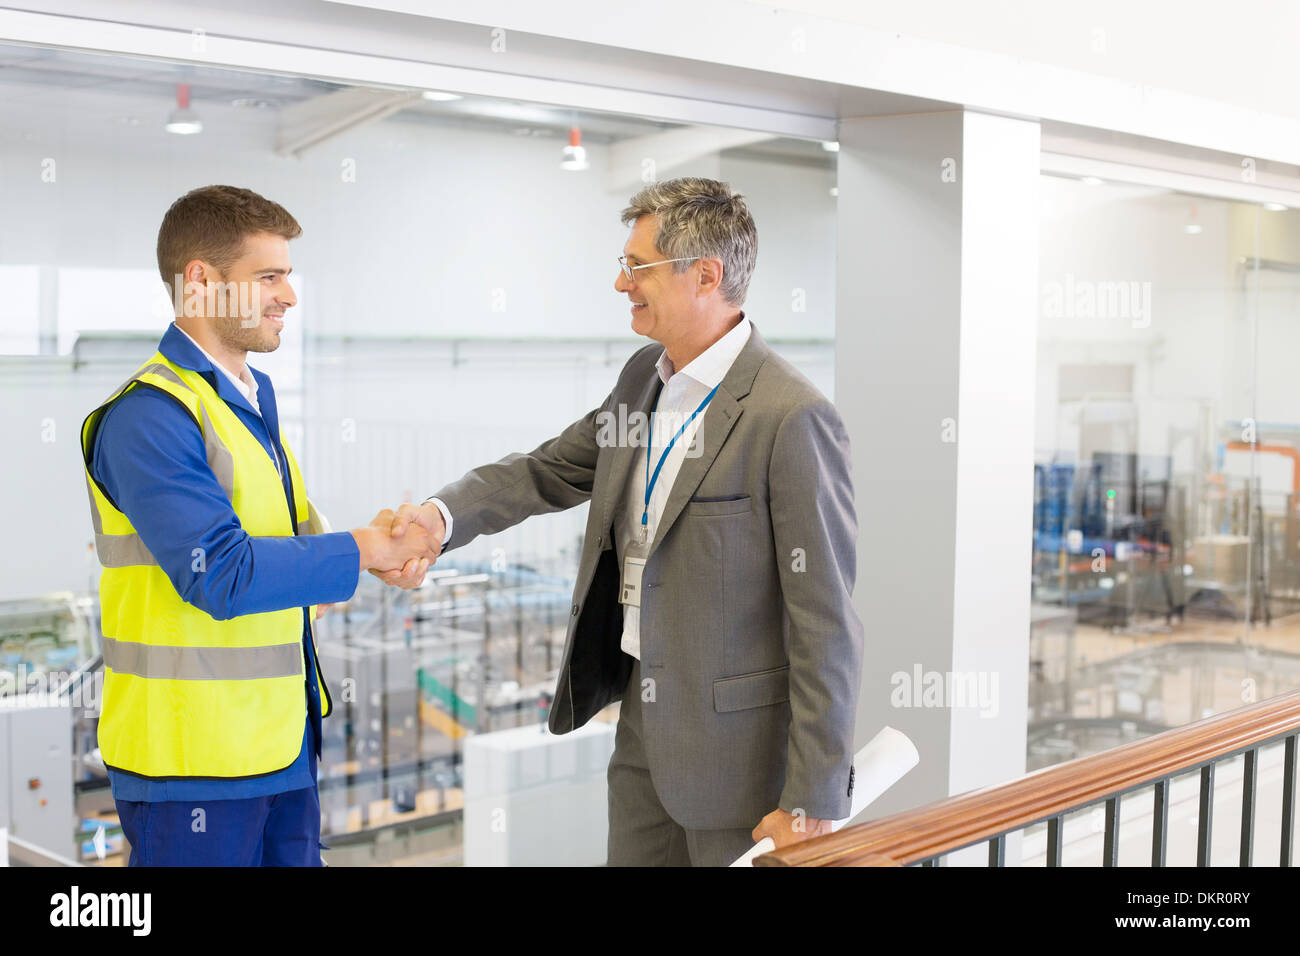 Supervisor and worker shaking hands in factory - Stock Image